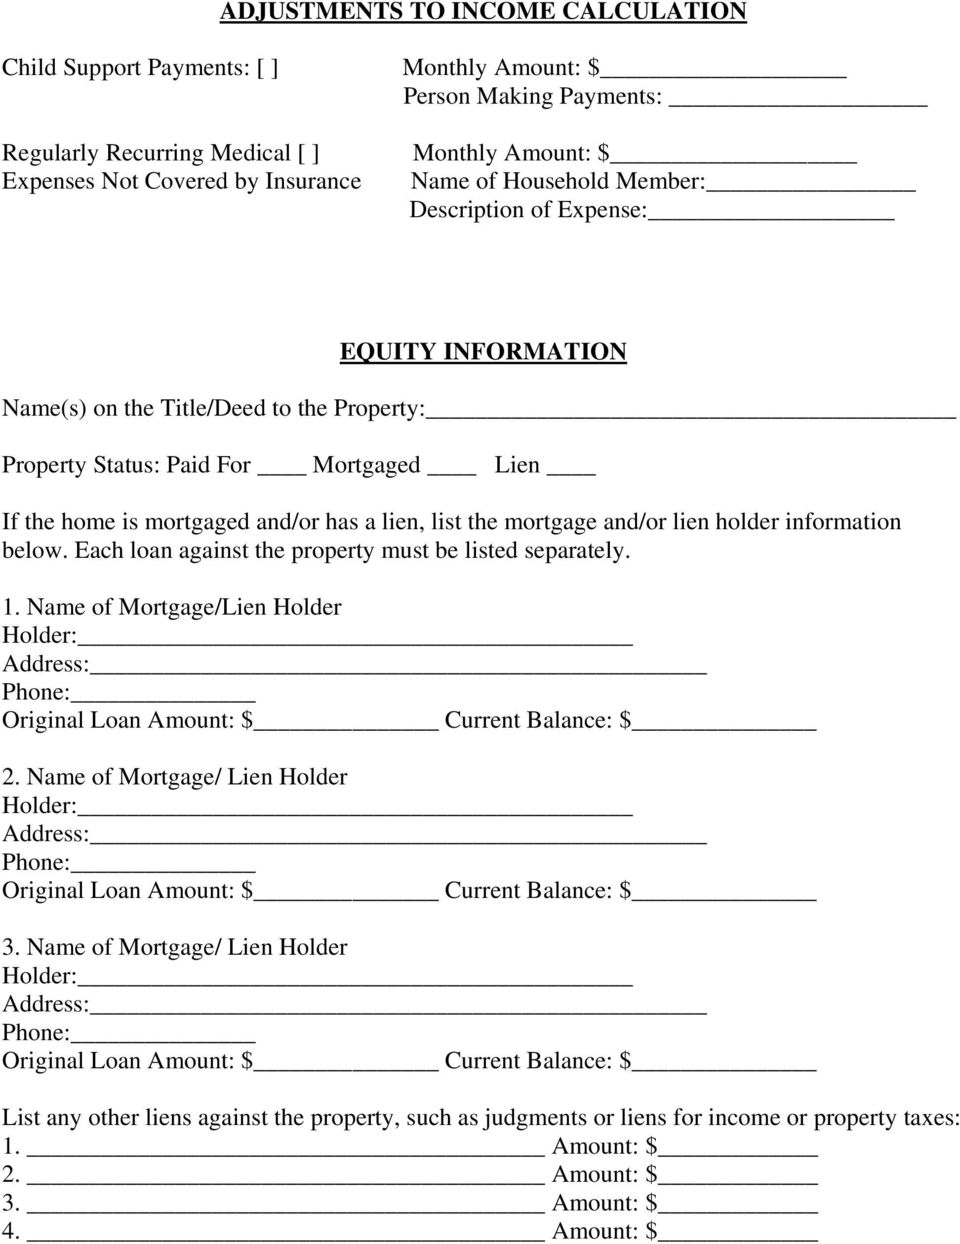 mortgage and/or lien holder information below. Each loan against the property must be listed separately. 1.